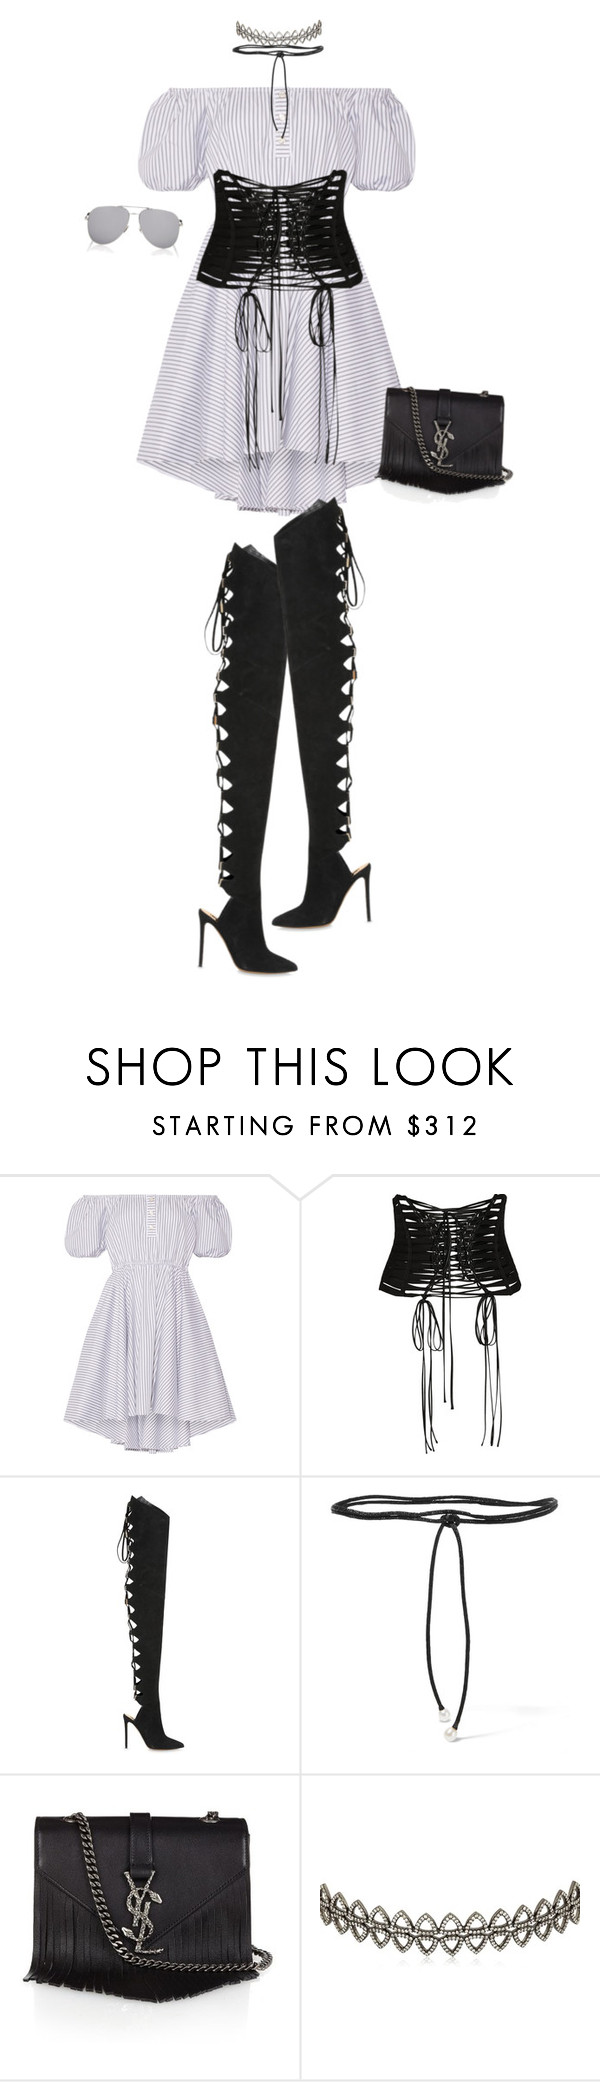 """Laced Up"" by miumiuceline ❤ liked on Polyvore featuring Caroline Constas, Dolce&Gabbana, Alexandre Vauthier, Aamaya by priyanka, Yves Saint Laurent, Assya London, StreetStyle, NYFW and laceup"